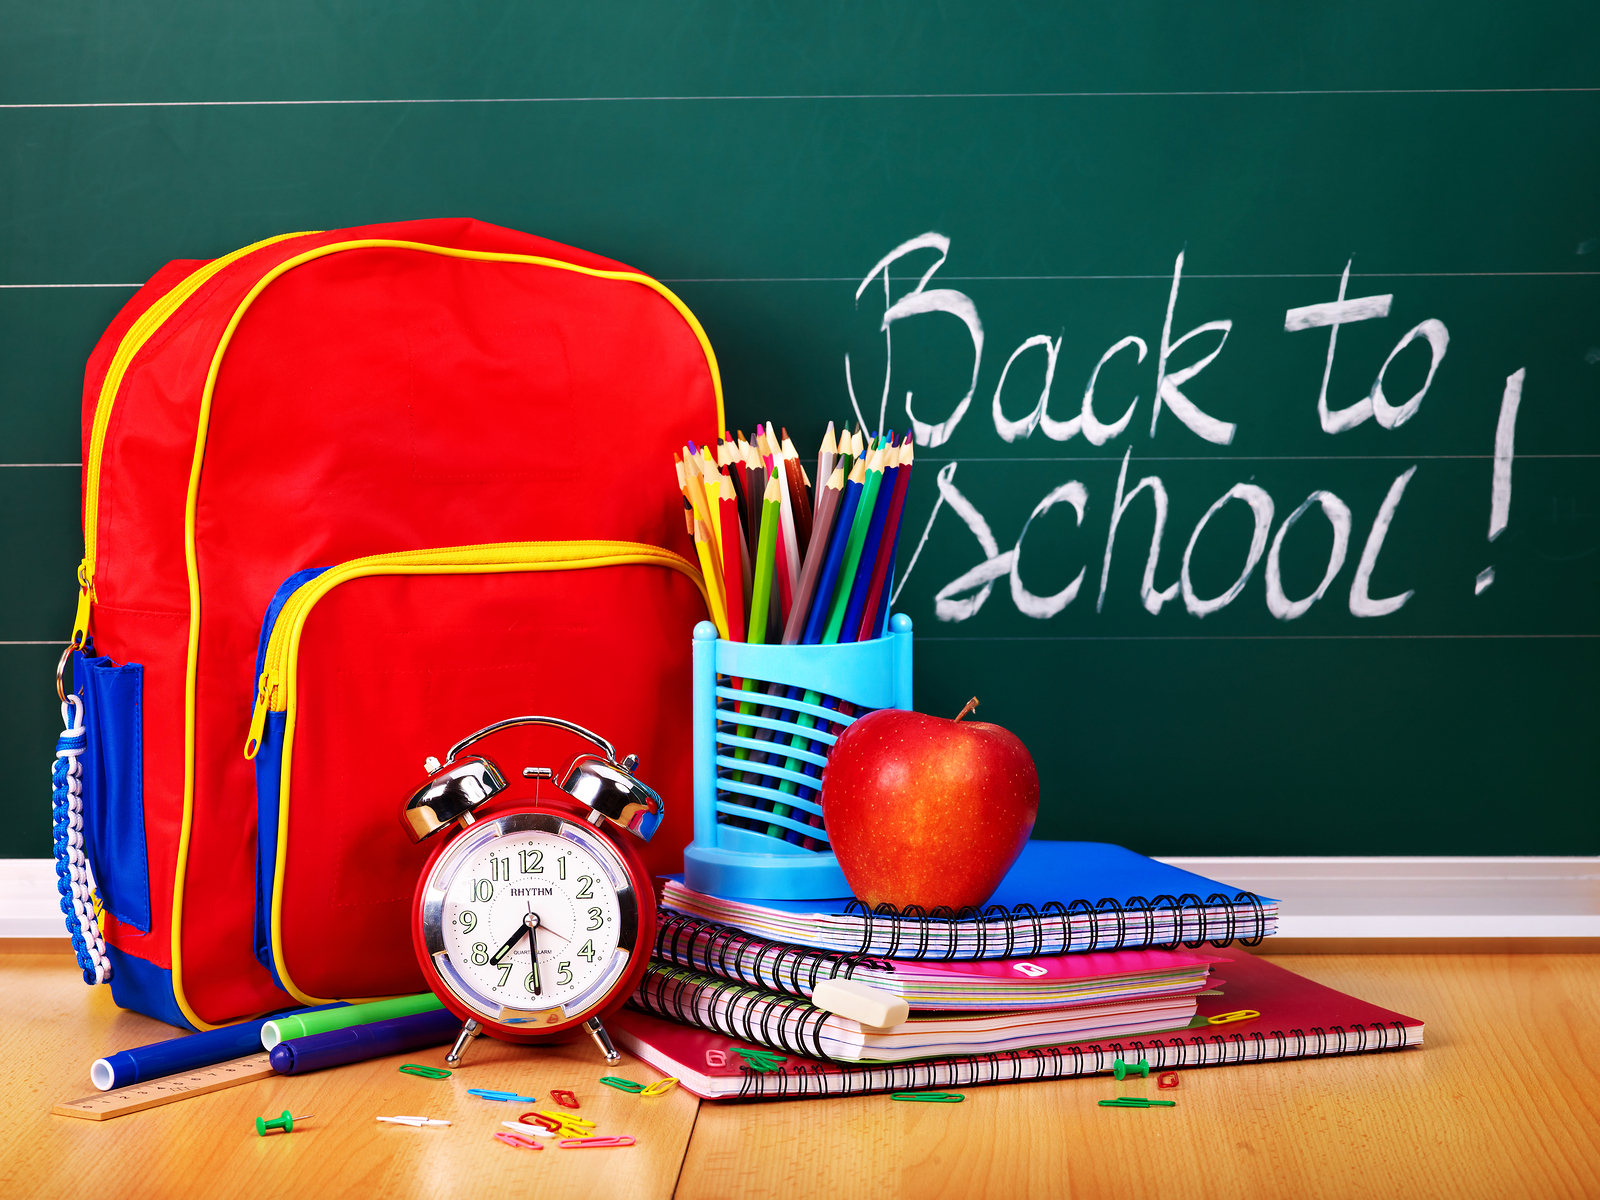 School Supplies Wallpaper 40828 1600x1200 px HDWallSourcecom